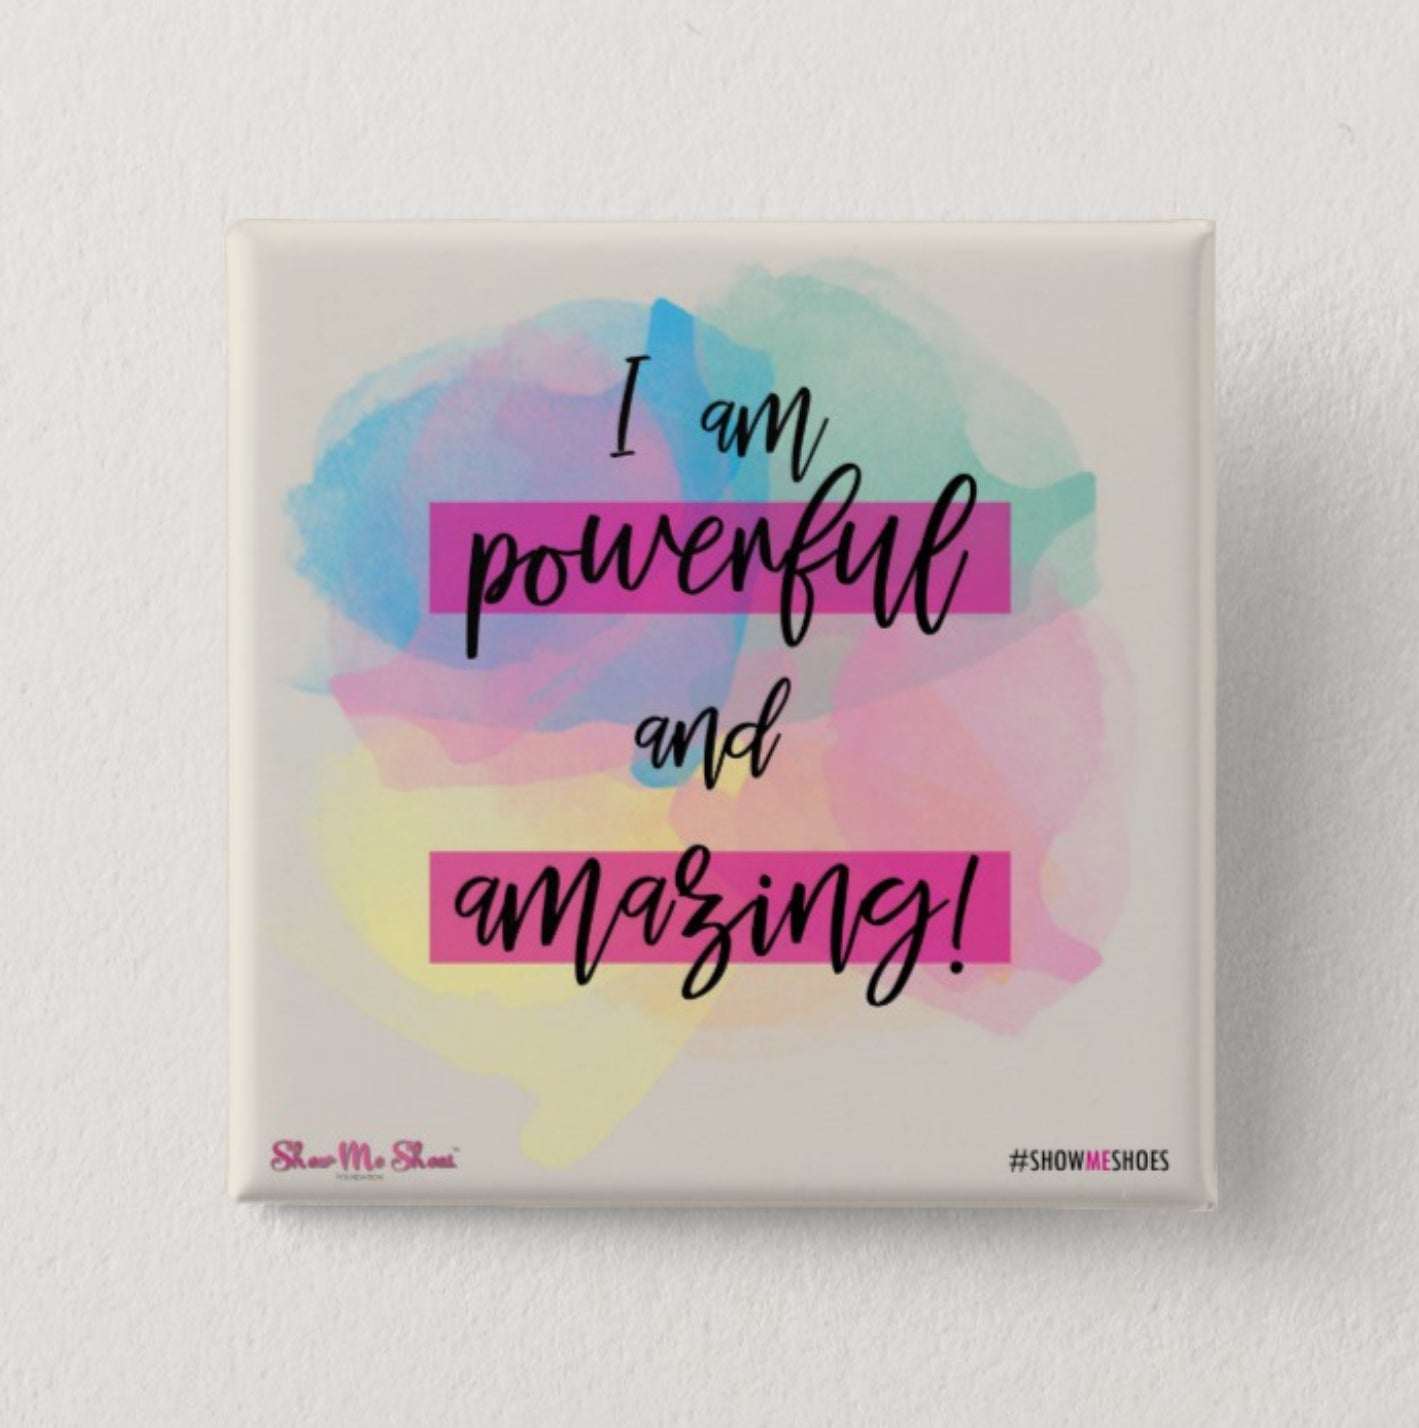 Affirmations from the Sole - I am powerful and amazing!